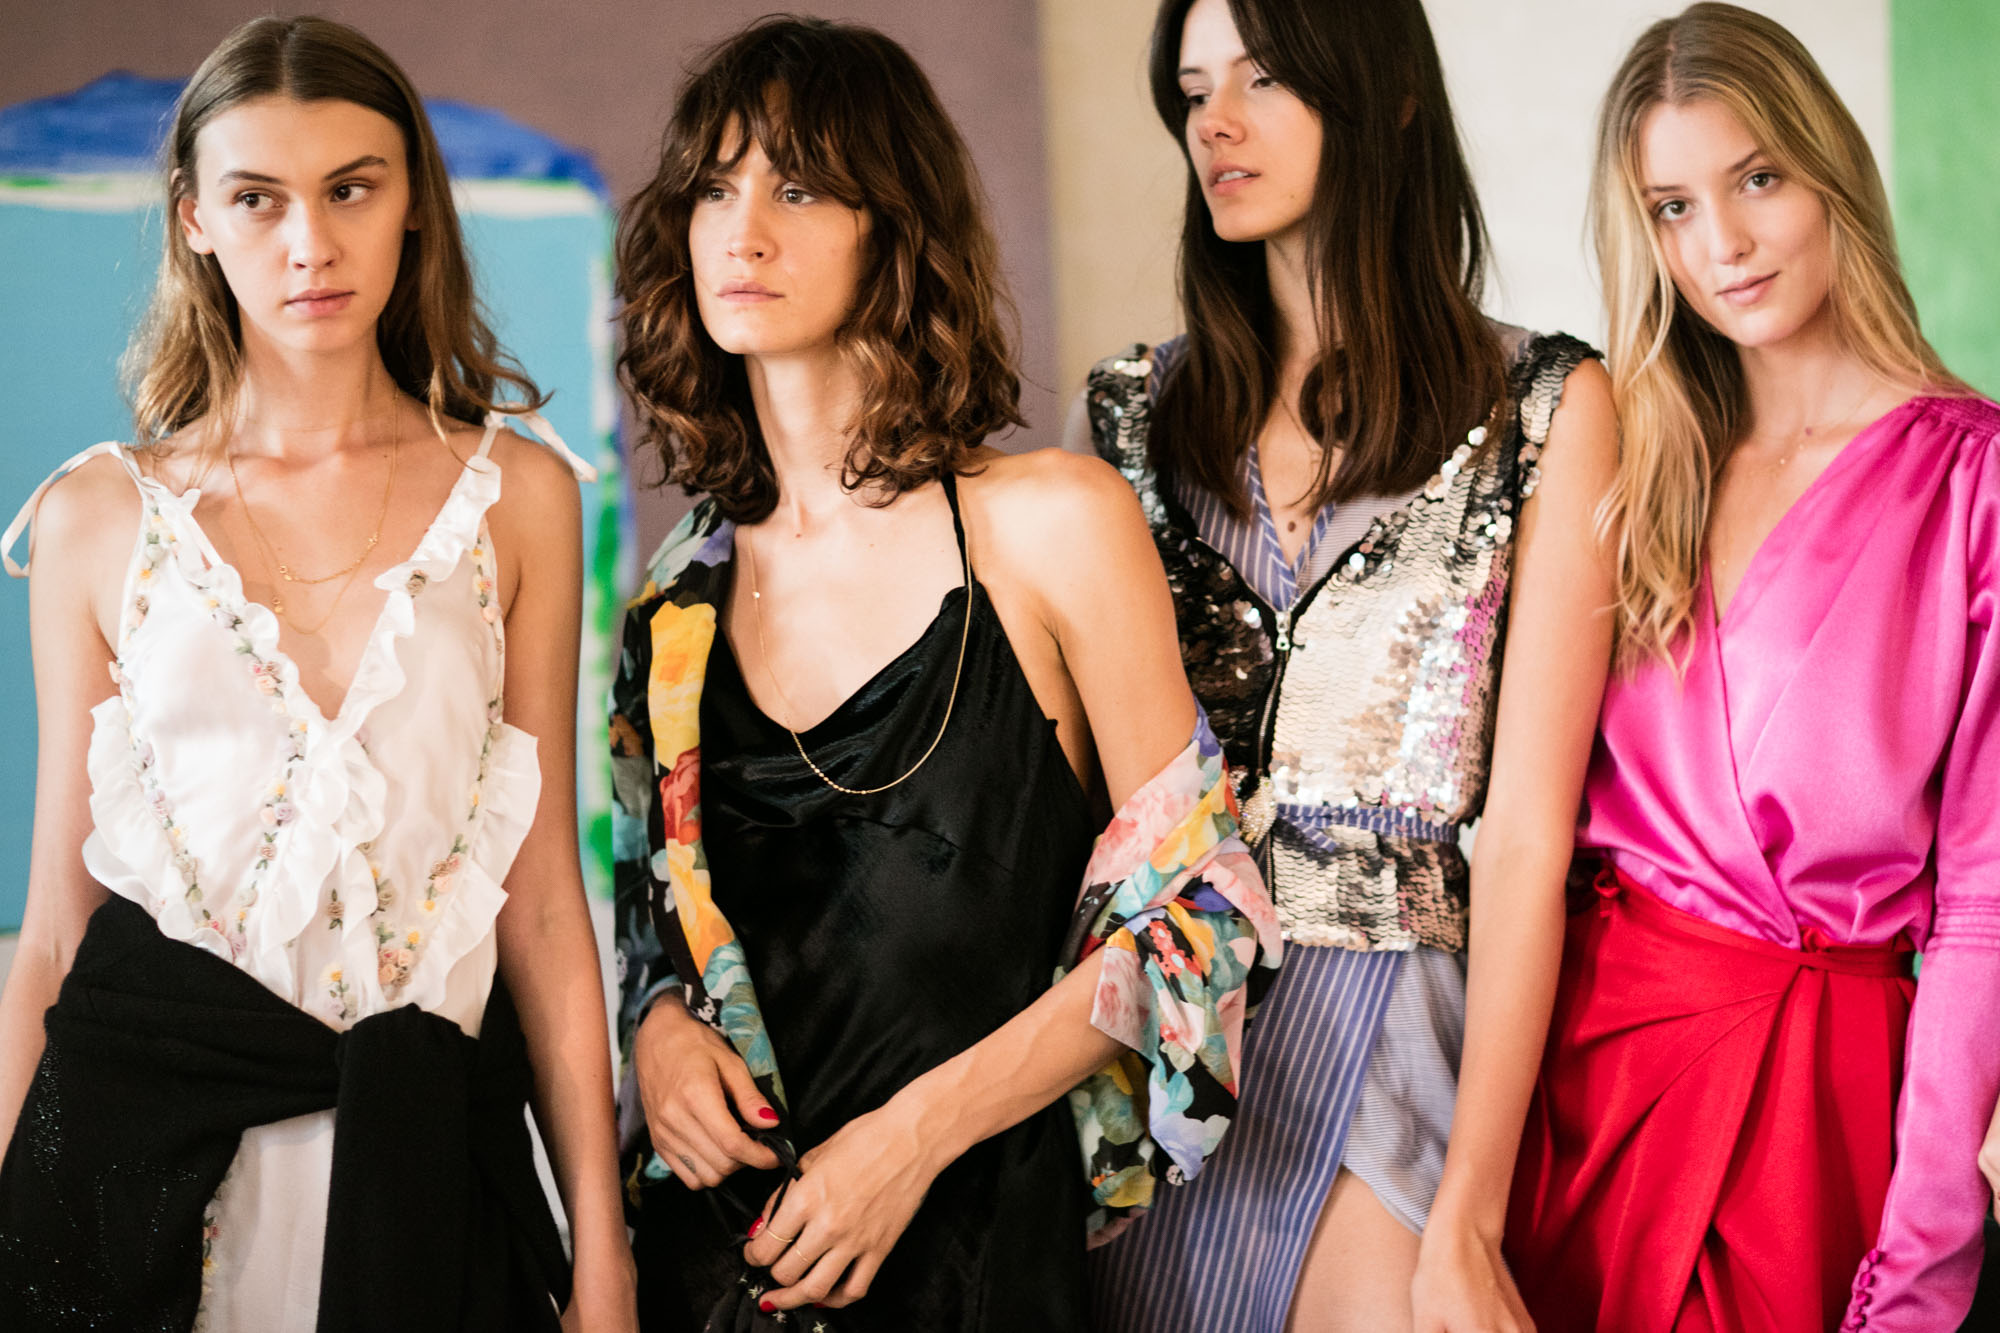 milanfw_ss2017_day2-20160922-5491